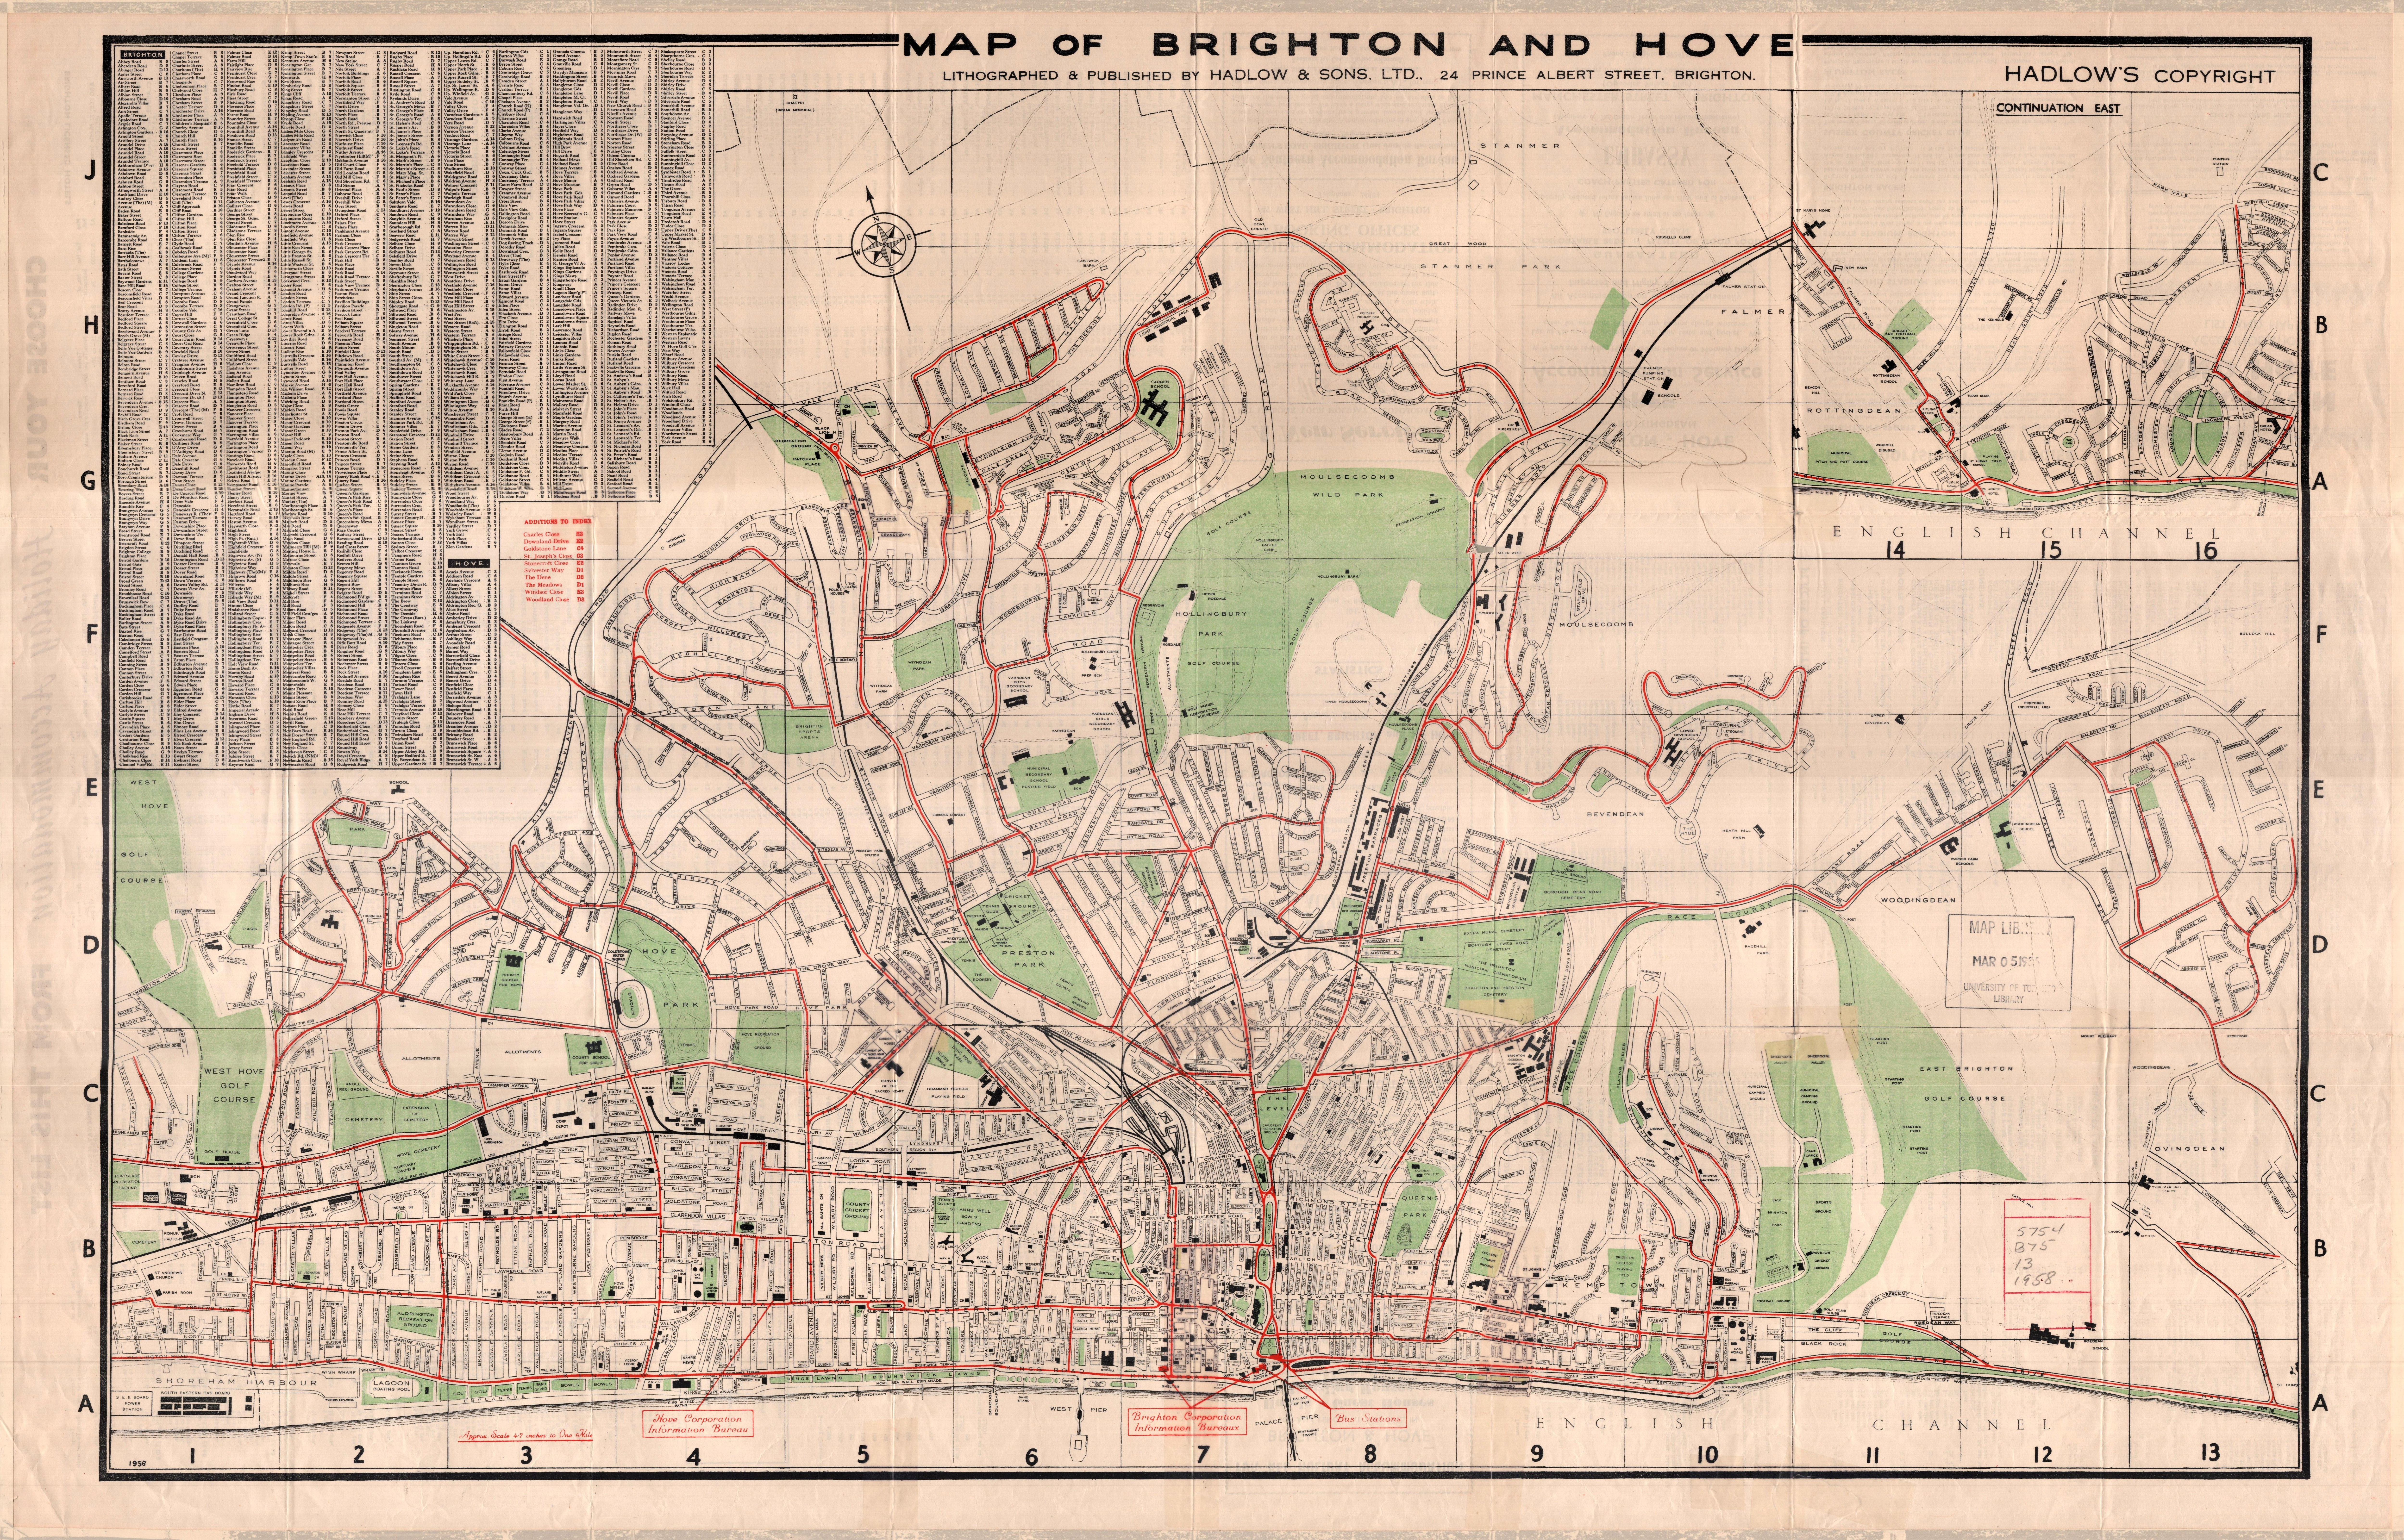 Map of Brighton and Hove Map and Data Library